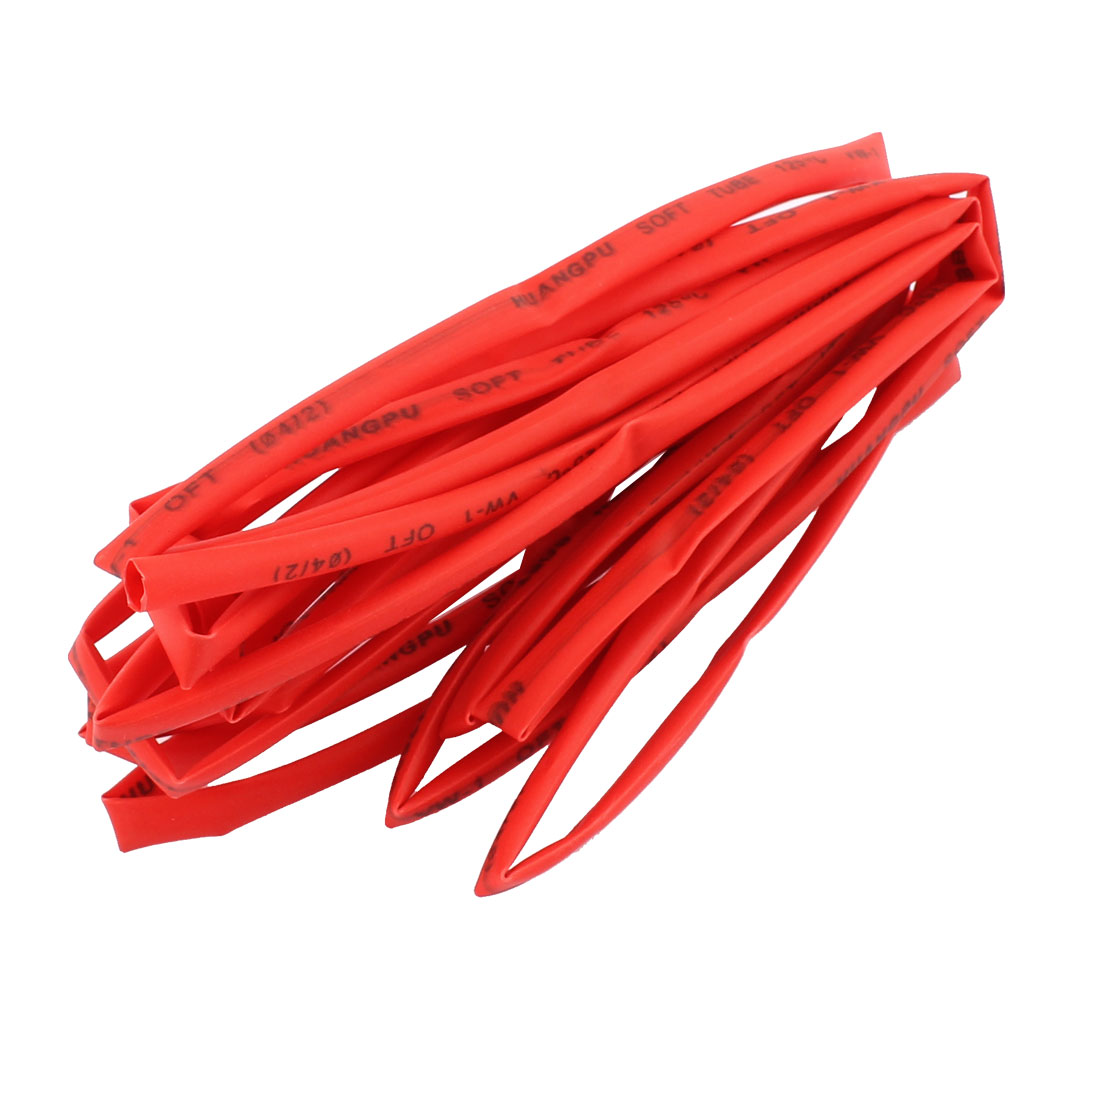 4M Length 4mm Dia Polyolefin Heat Shrinkable Tube Sleeving Red